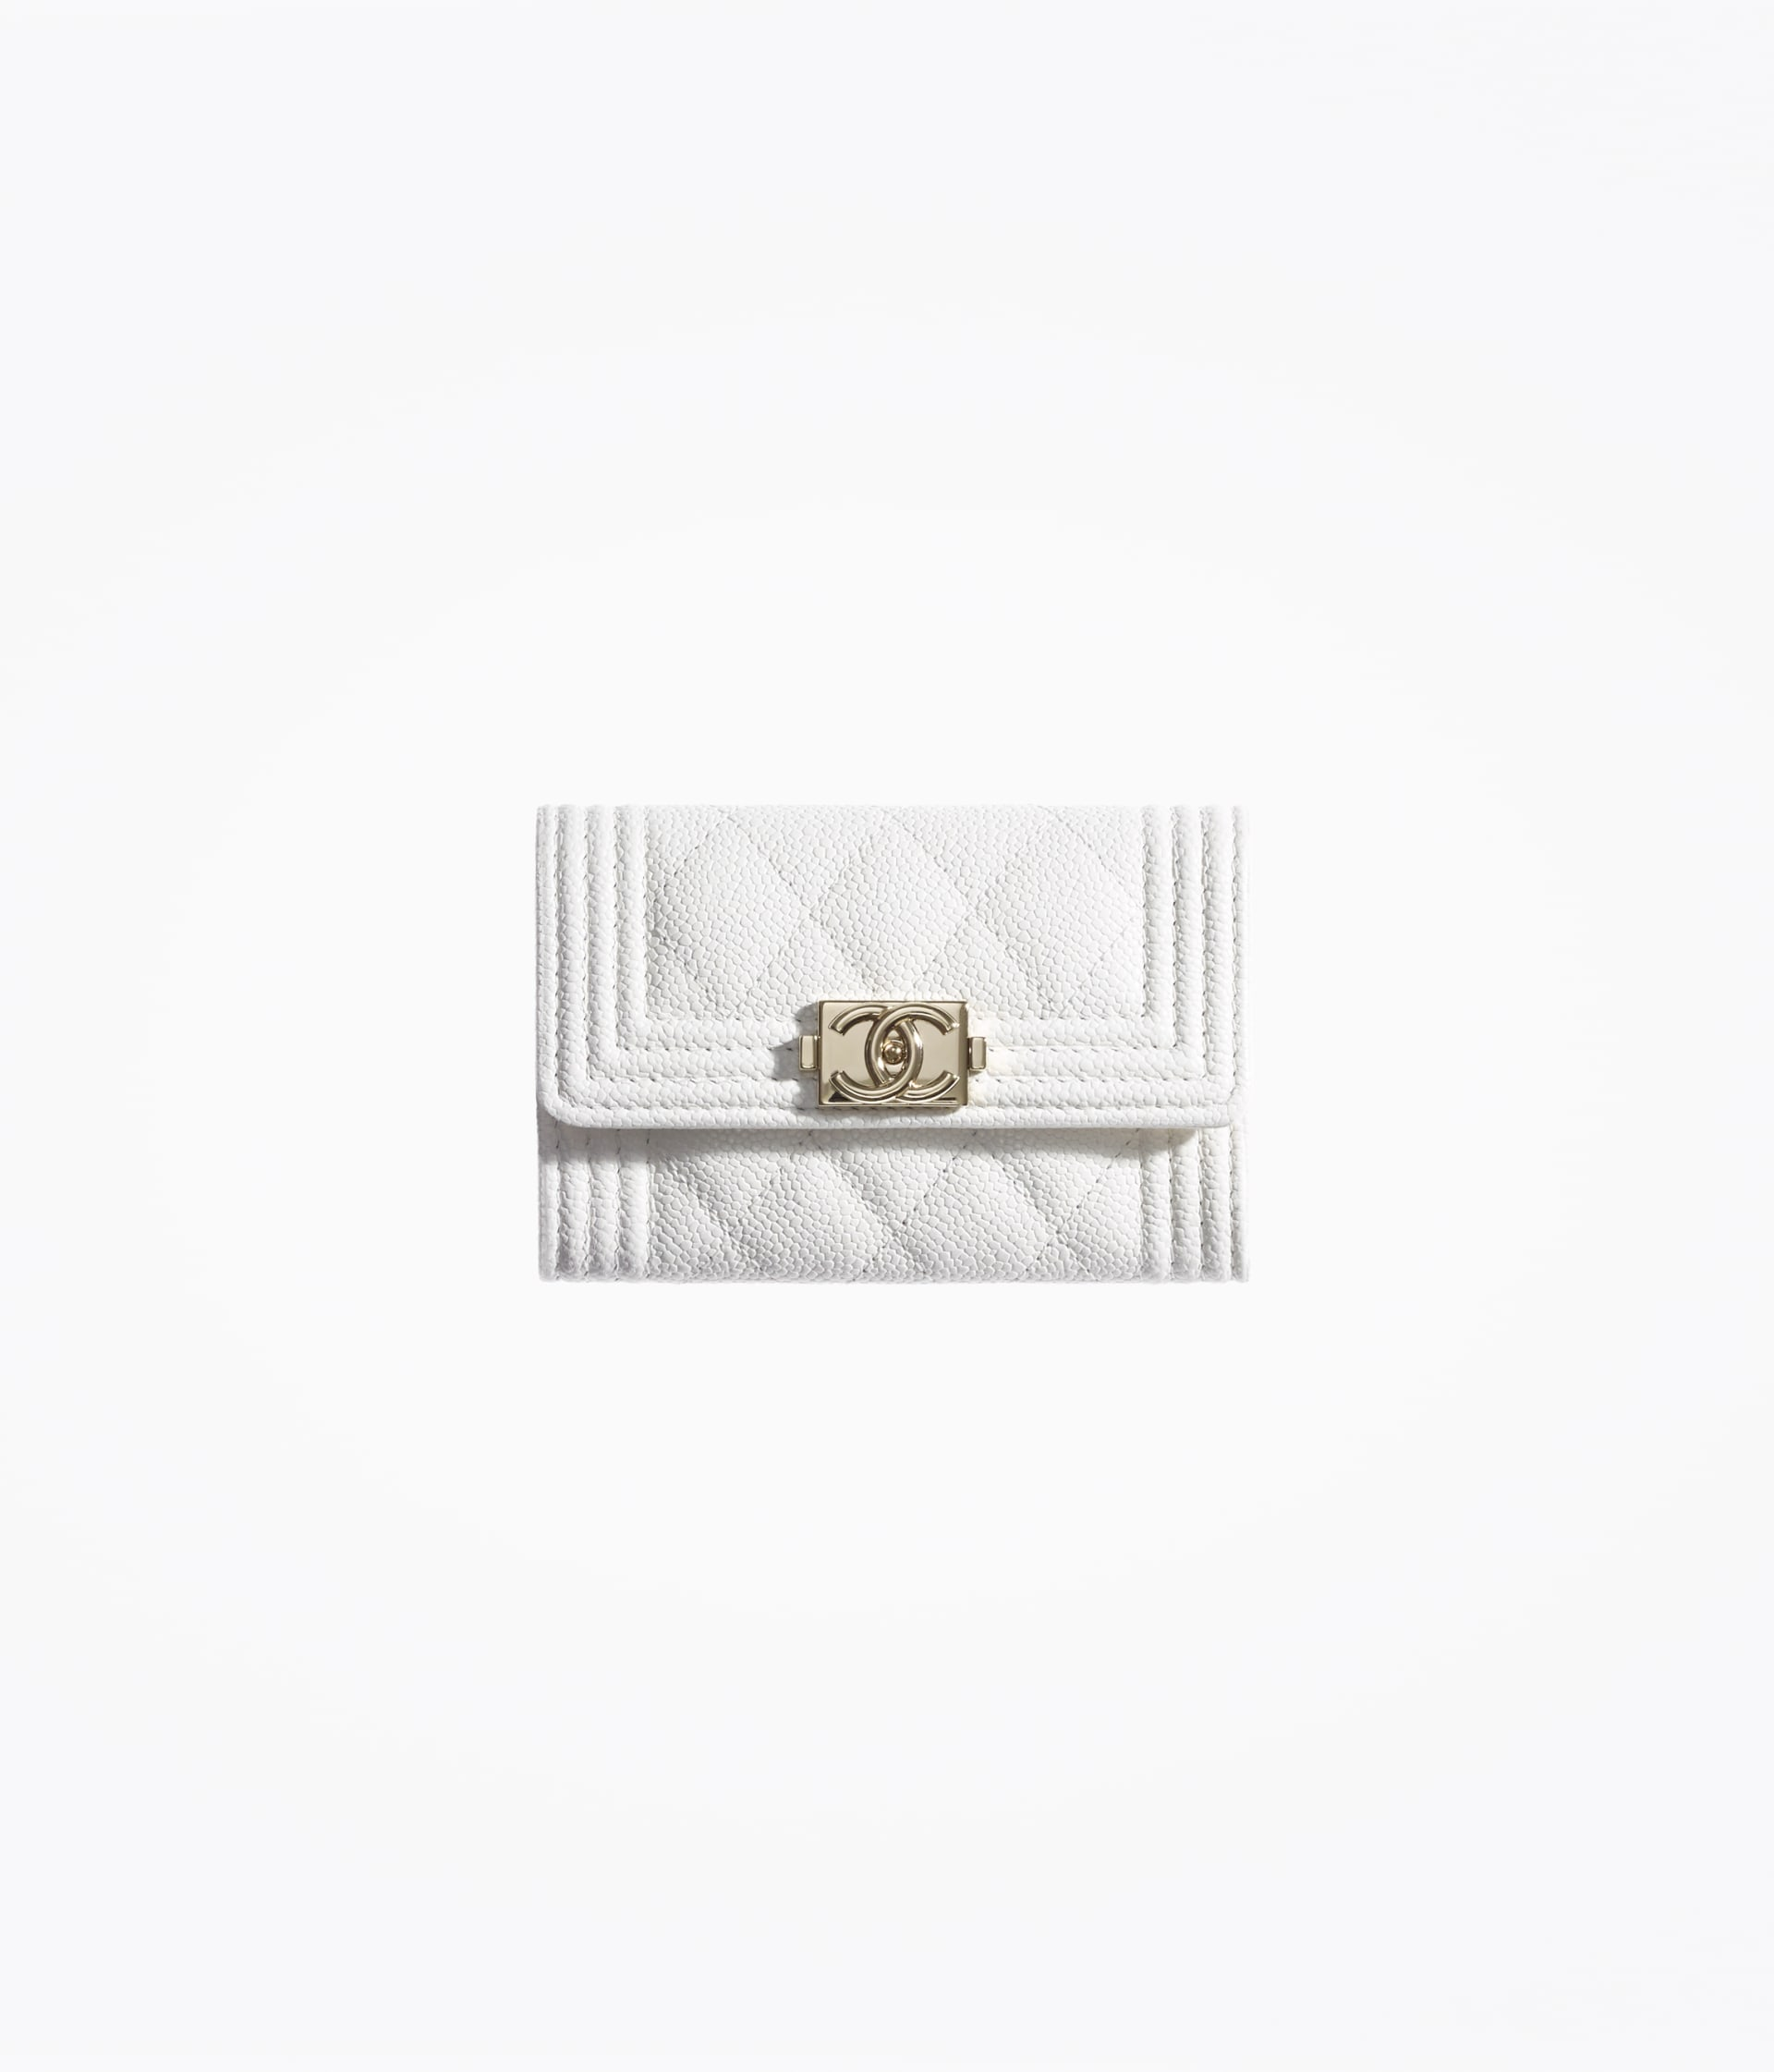 image 1 - BOY CHANEL Flap Card Holder - Grained Calfskin & Gold-Tone Metal - White